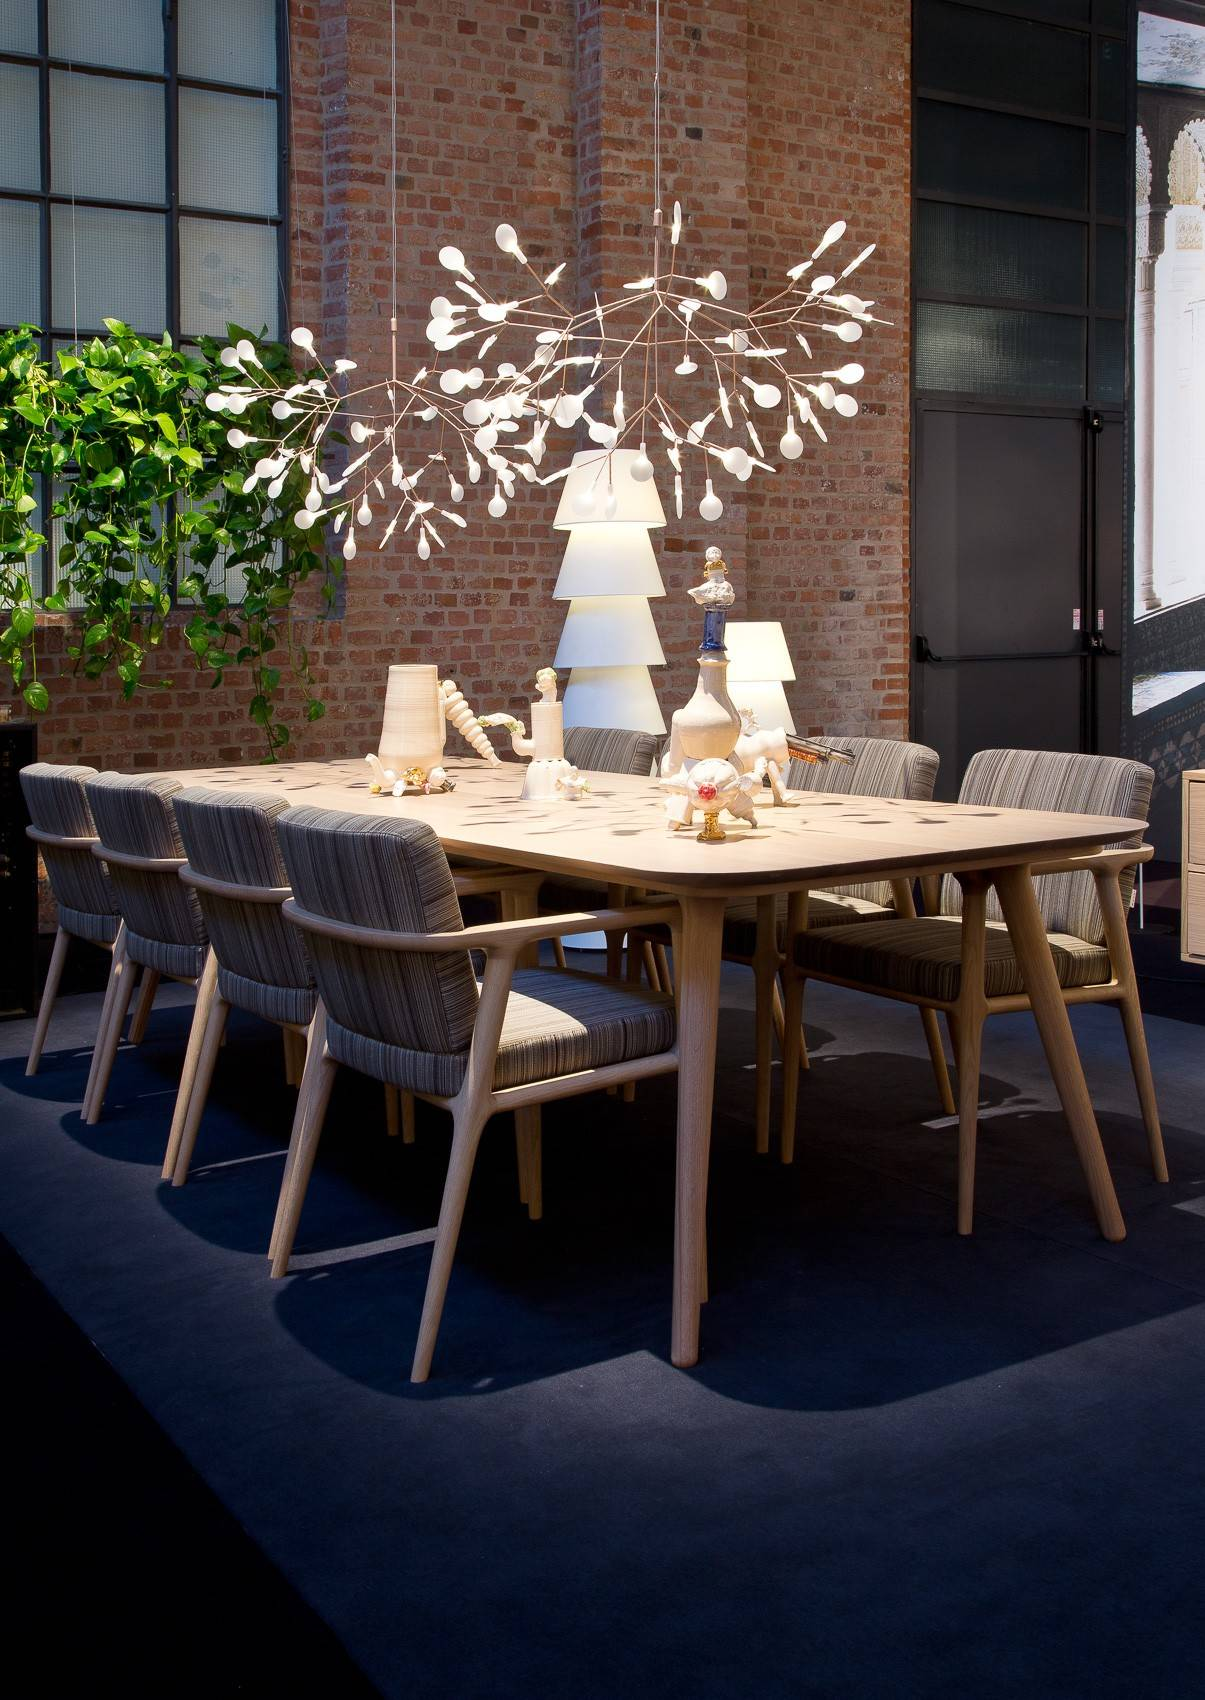 Moooi heracleum ii suspension lamp gr shop canada for Suspension design